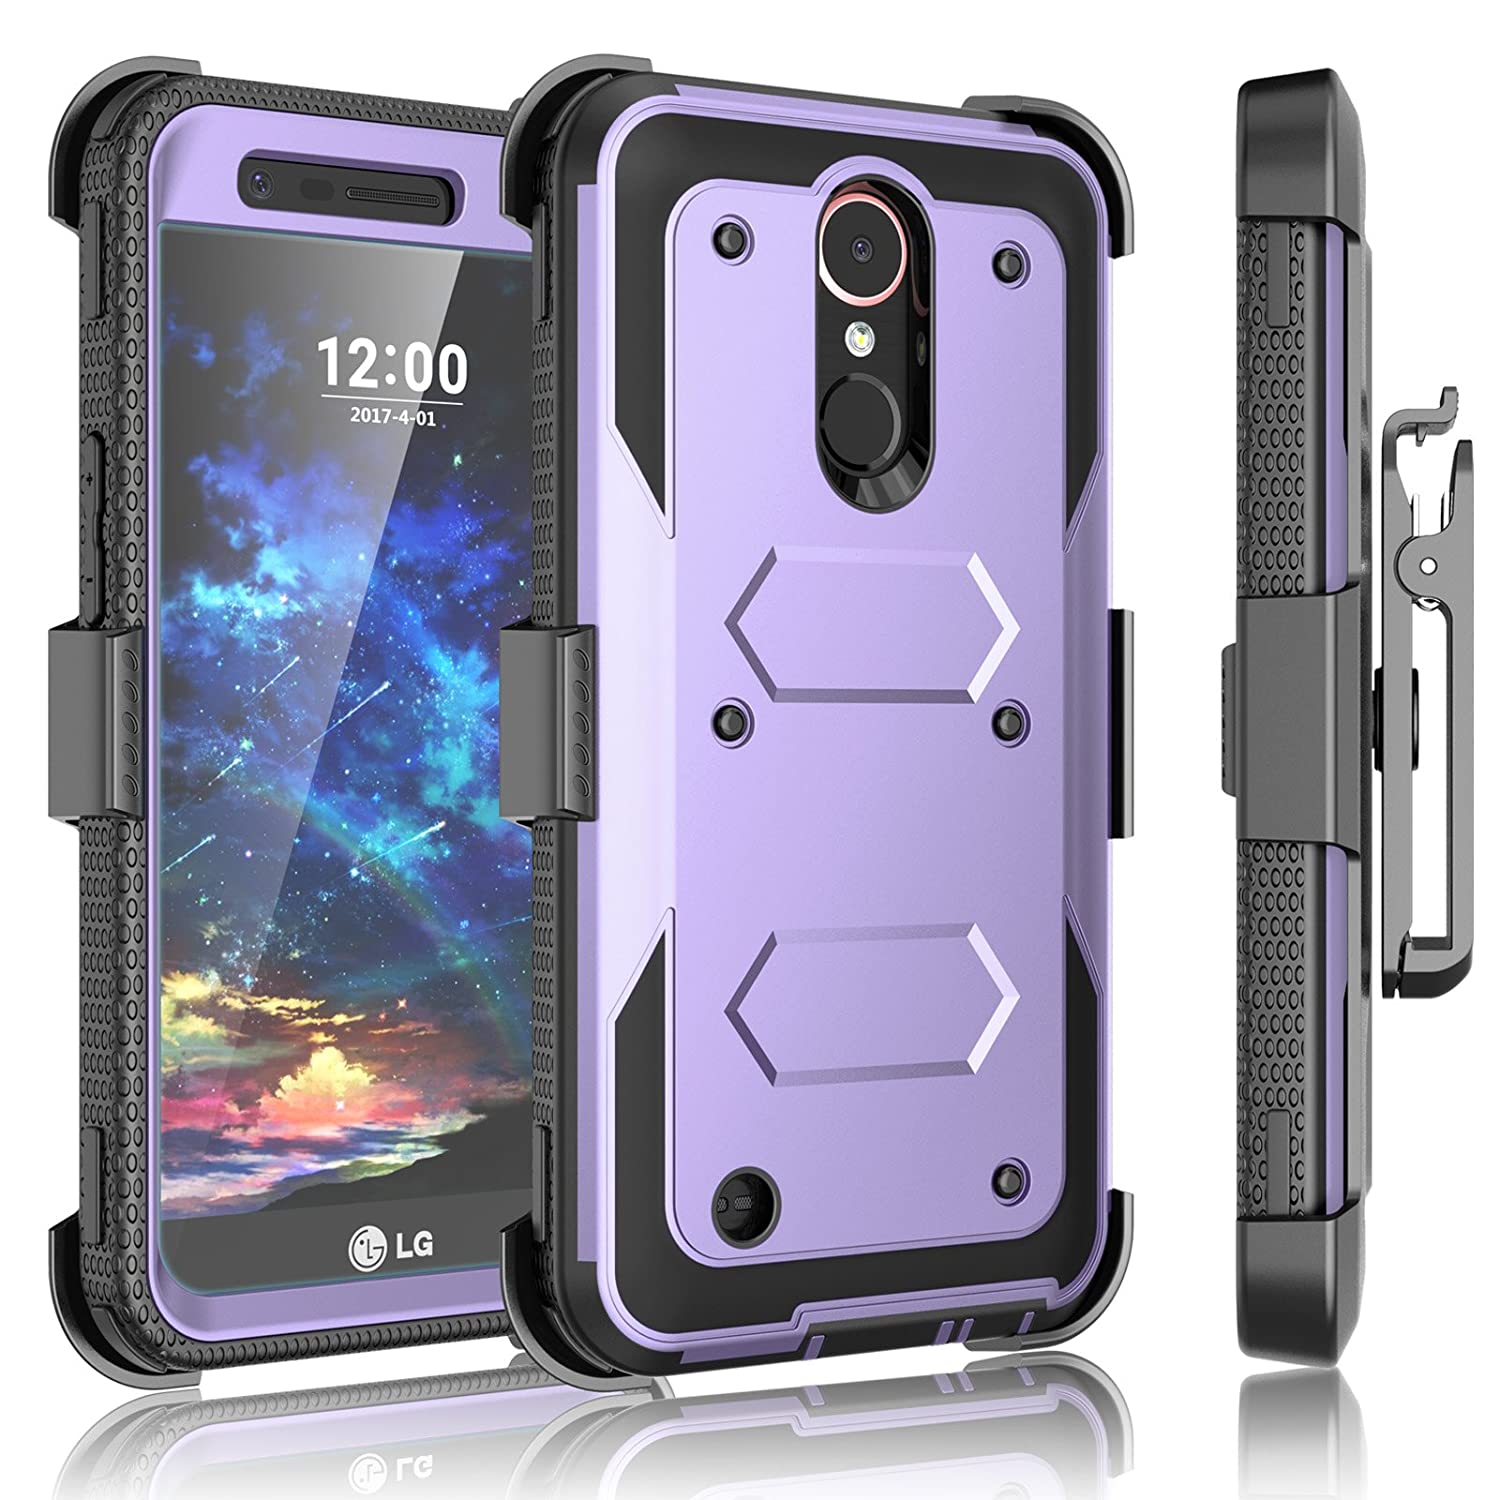 LG K20 Plus Case, LG K20 V Holster, LG Harmony/LG V5 / LG K10 2017 Case Clip, Tekcoo [TShell] [Built-in Screen Protector] Locking Secure Swivel Belt Kickstand Phone Full Body Case Cover -Lavender